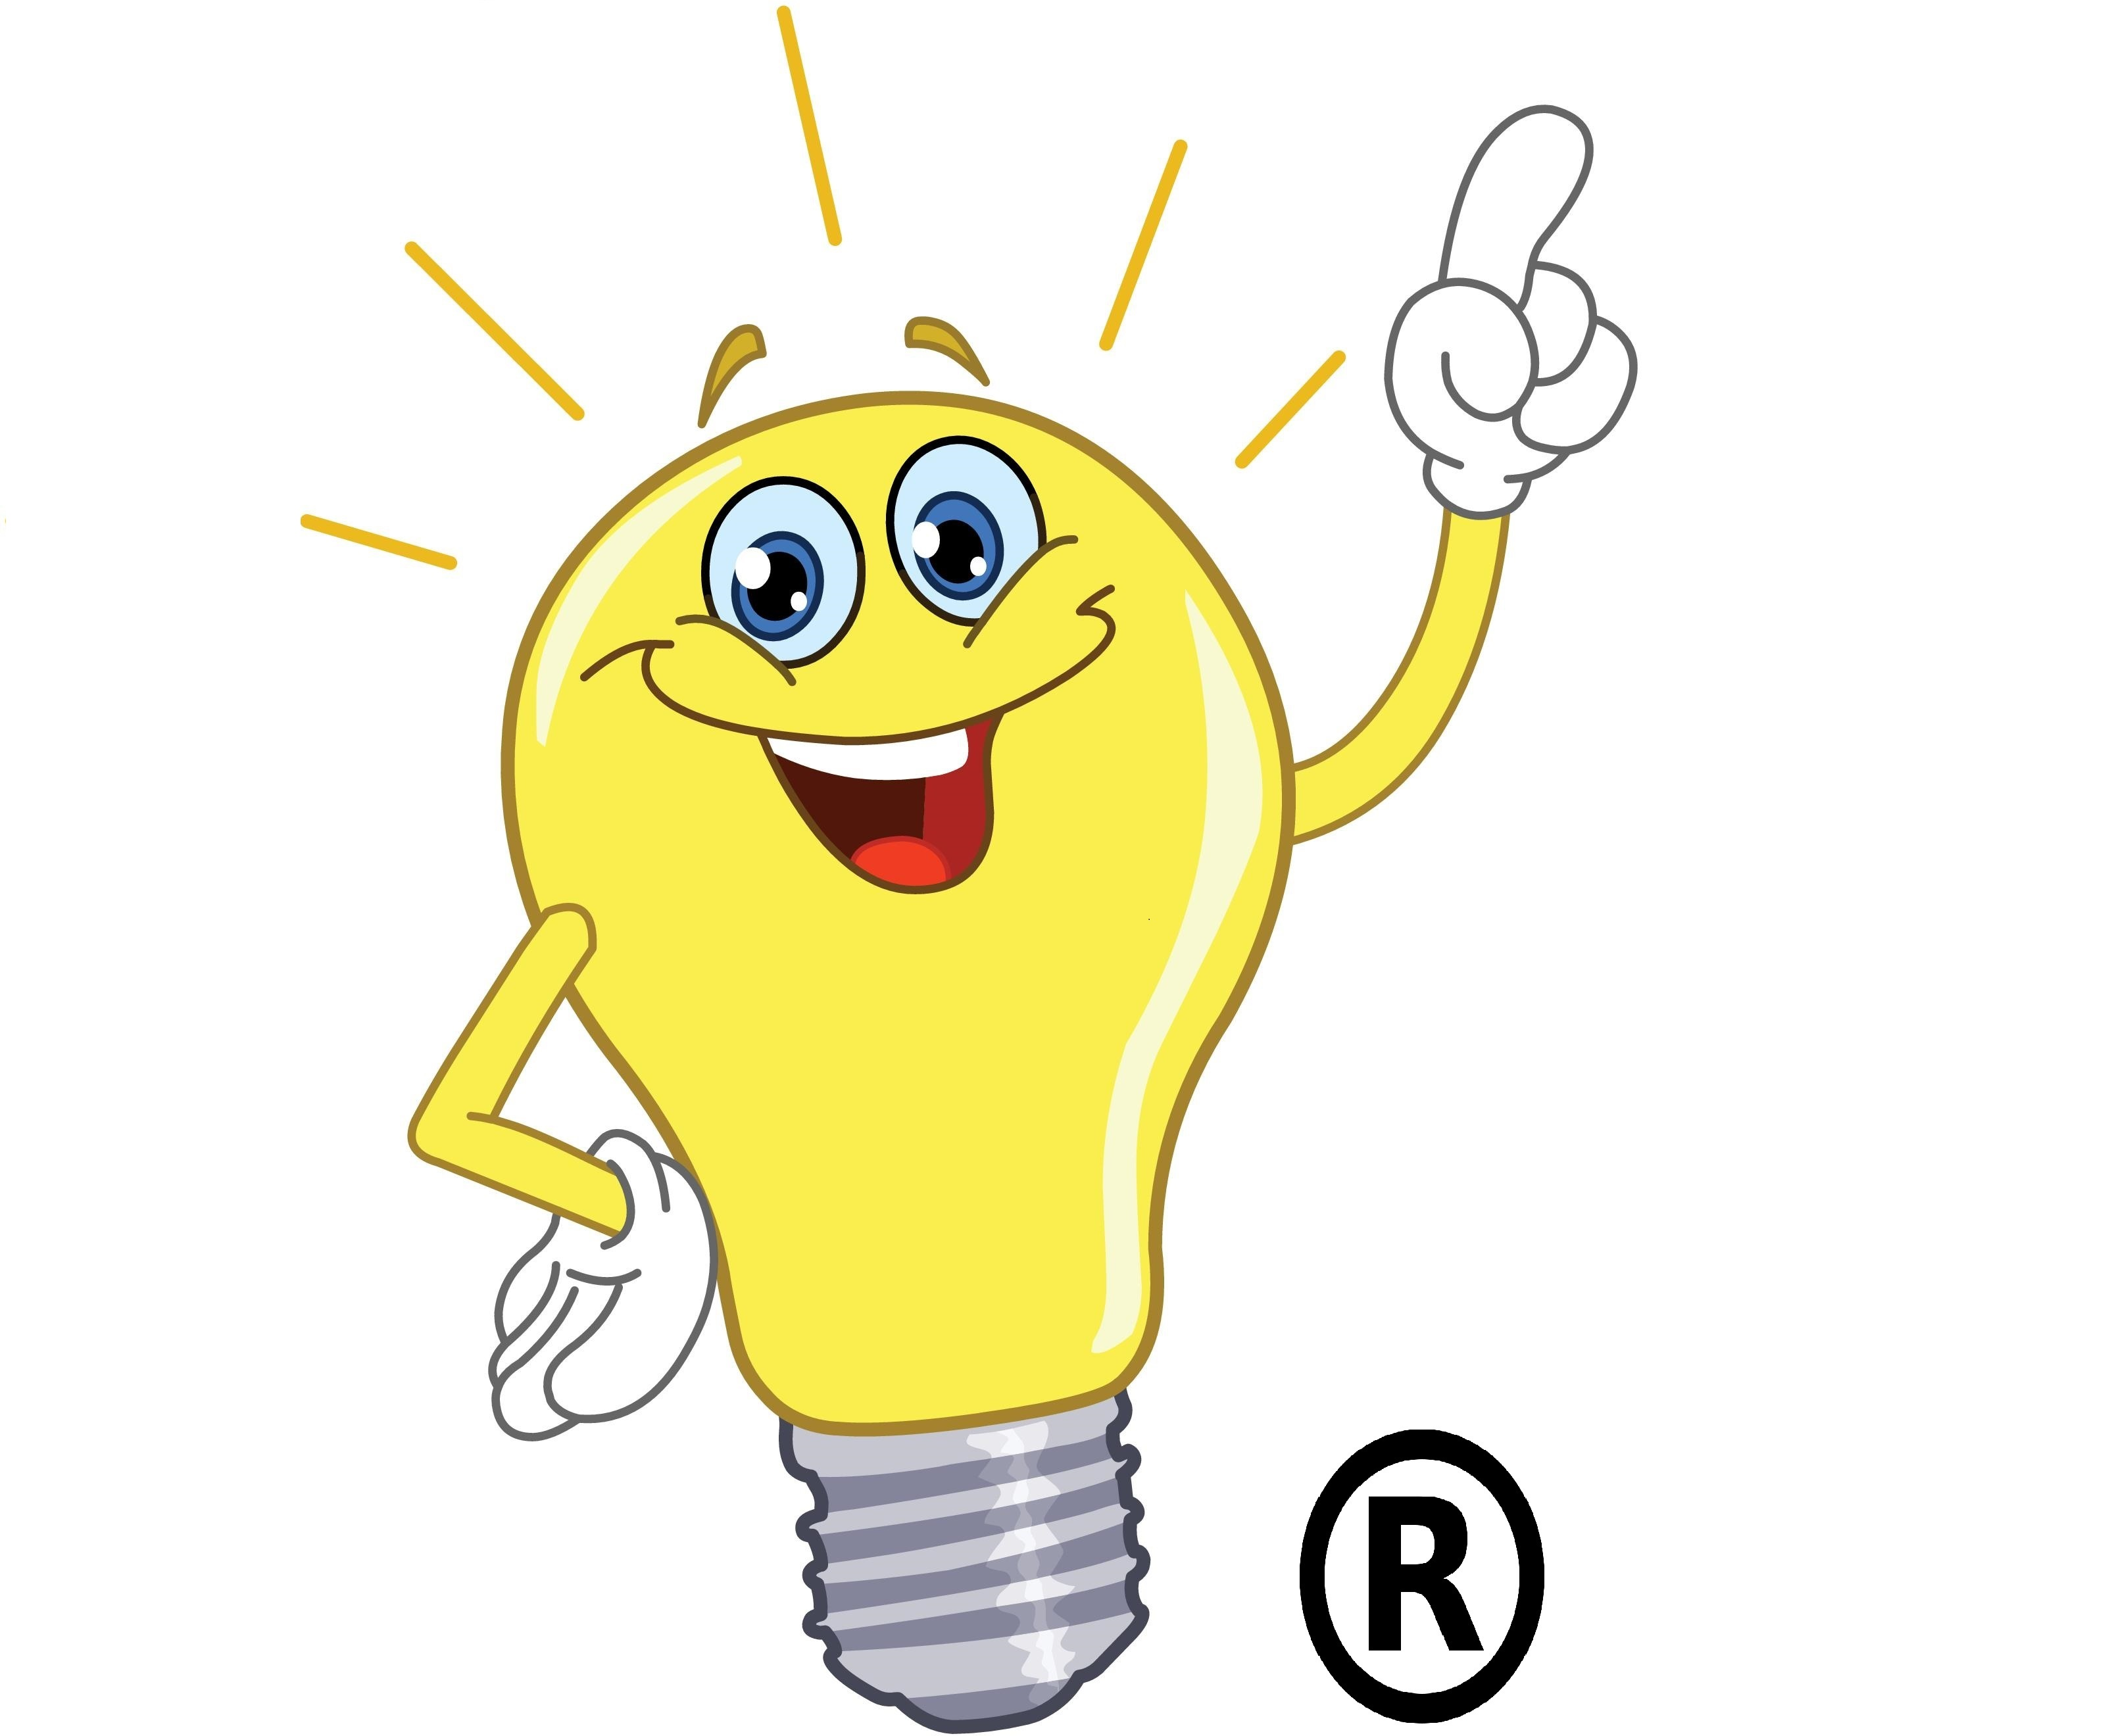 Wigton Electrical Ltd. ... Electrician In The Wigton area And surrounding districts | 3 Park Road, Westward CA7 8AP | +44 7805 266634